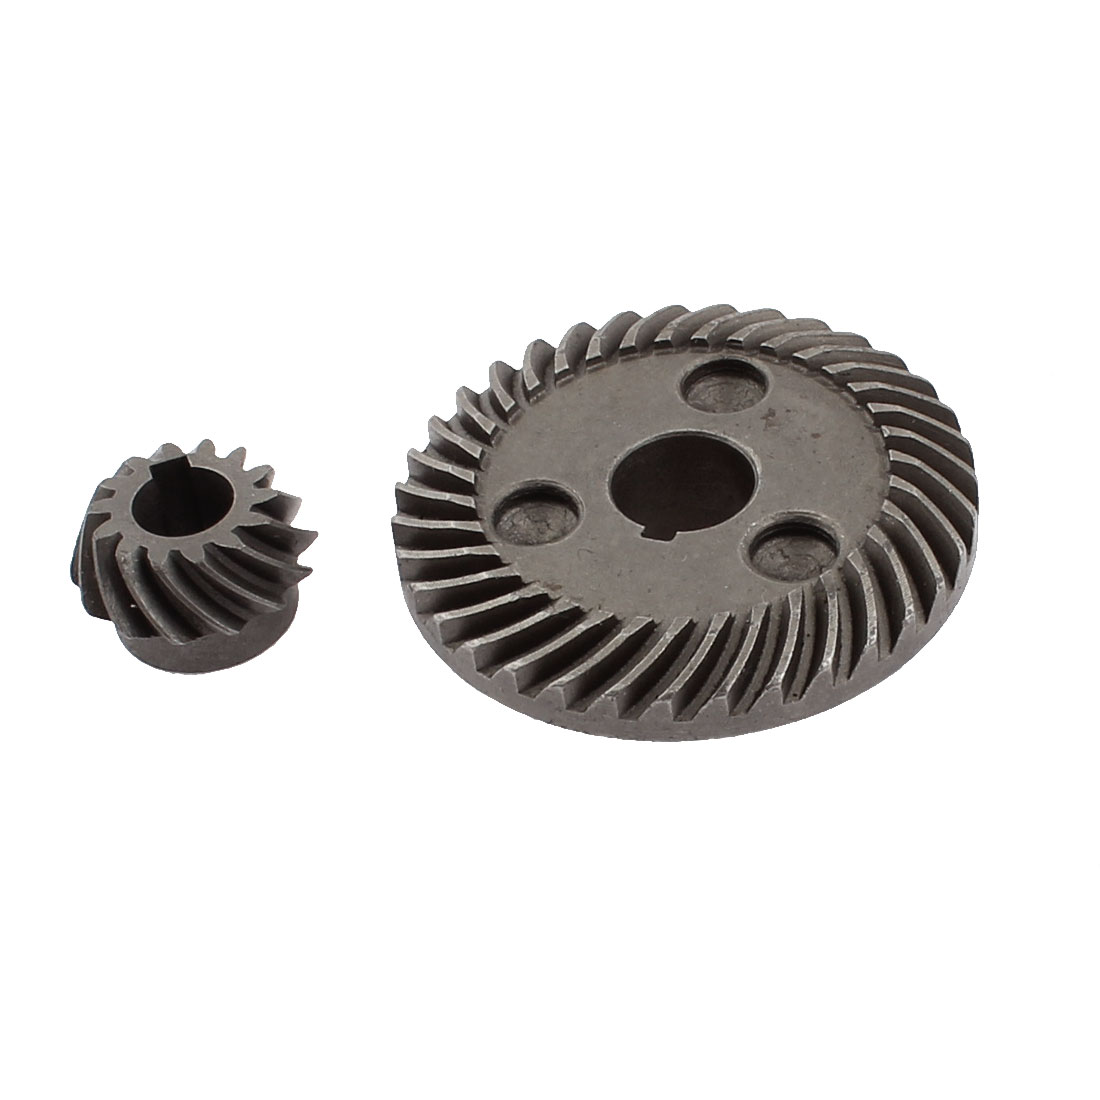 Spare Part Electric Angle Grinder Spiral Bevel Gear Set Dark Gray for Hitachi 100